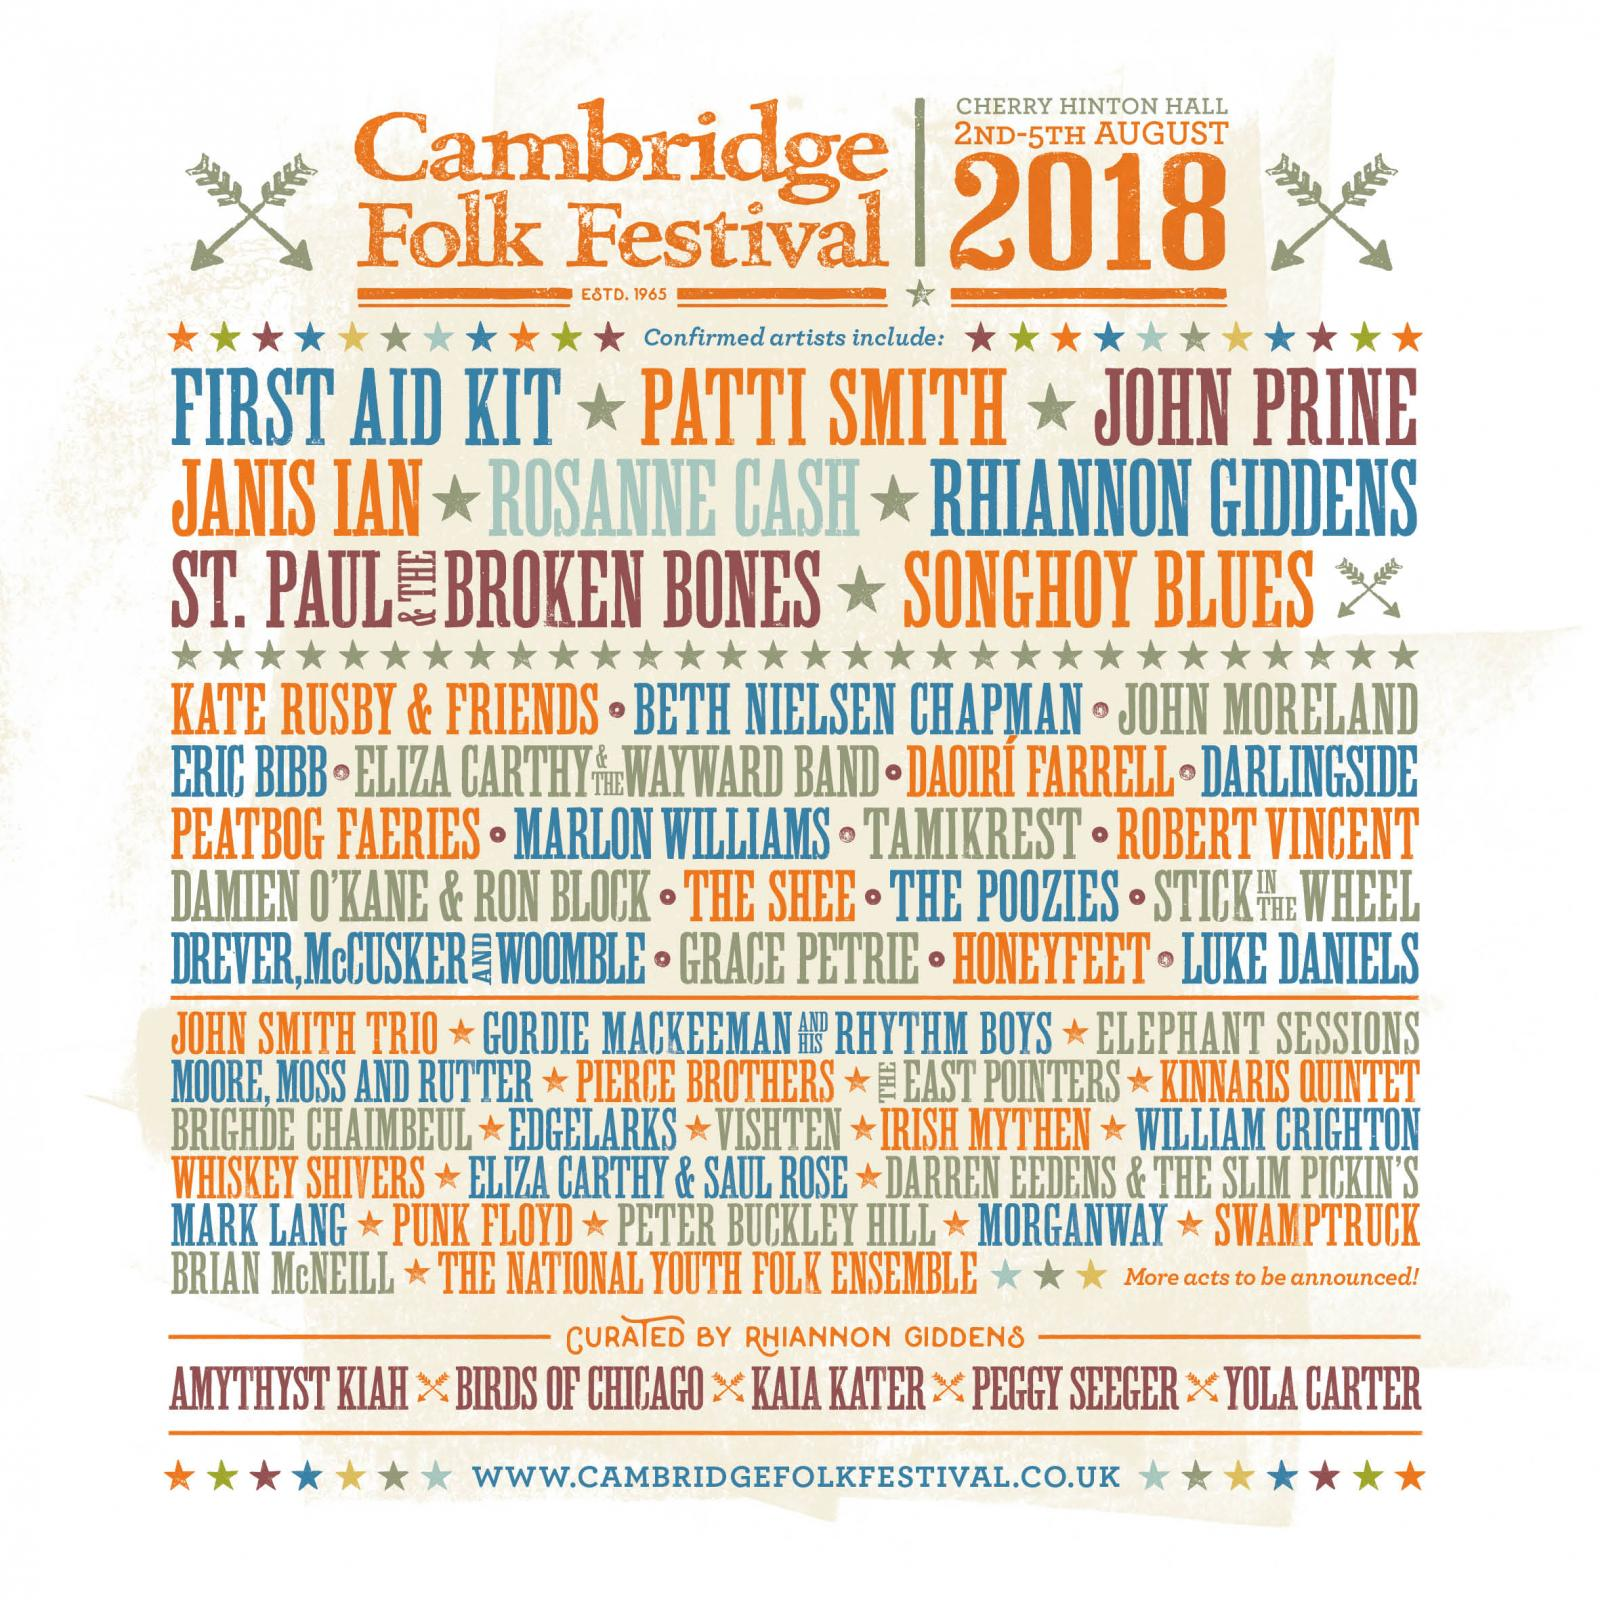 PREVIEW: 10 acts to see at Cambridge Folk Festival 2018